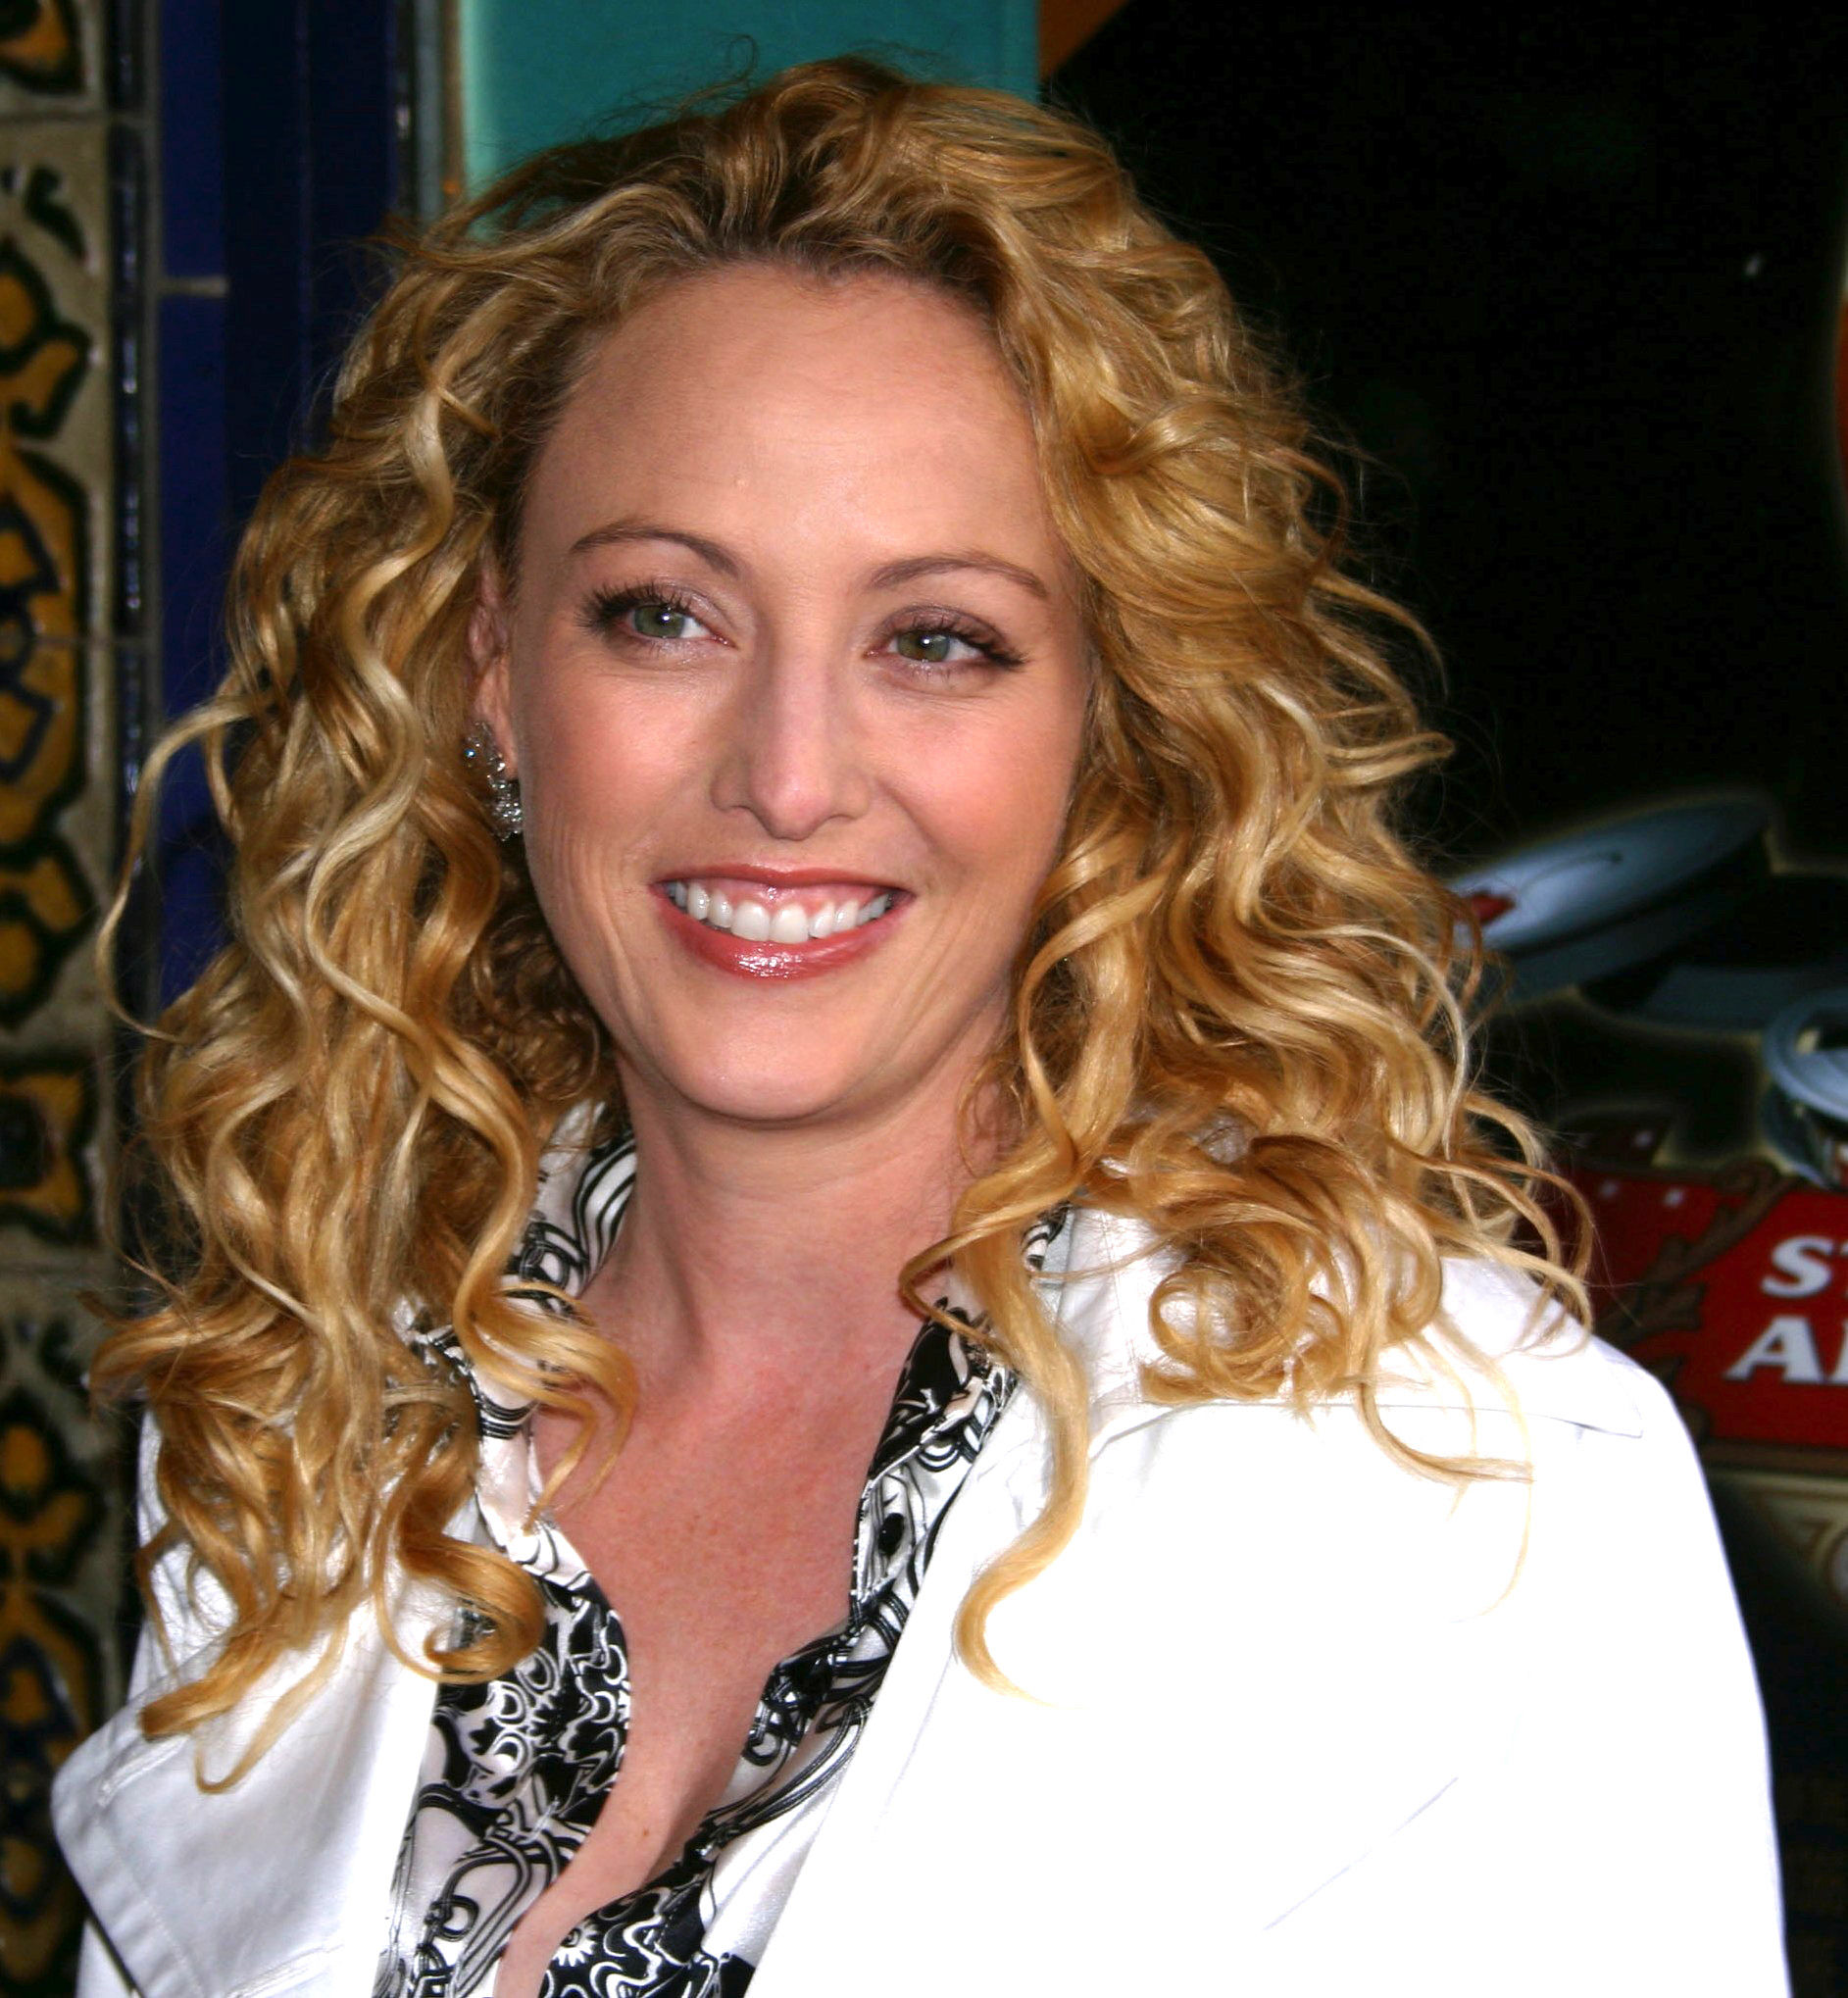 Photo of Virginia Madsen: Actress from the United States